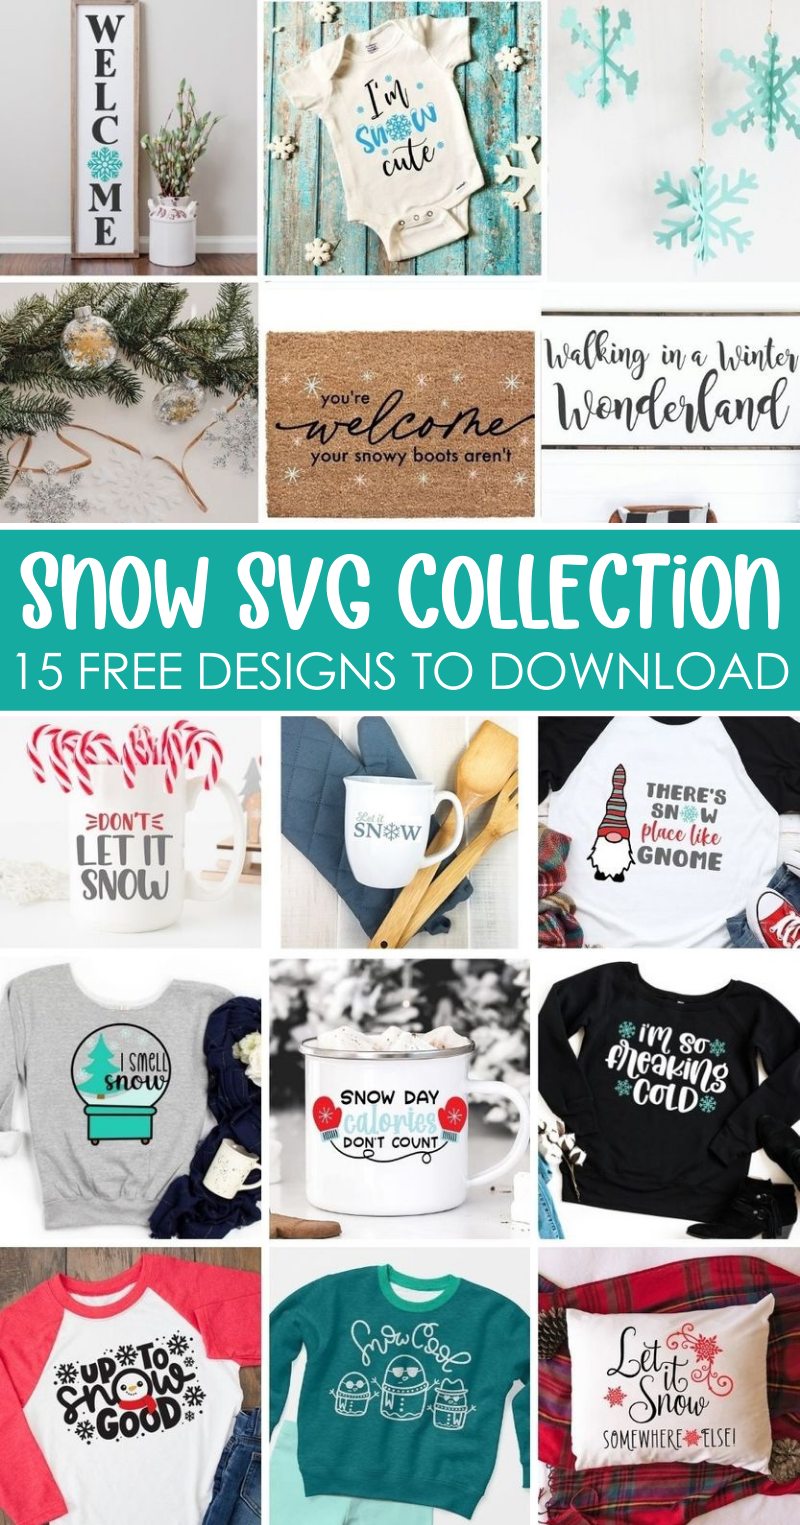 https://www.happygoluckyblog.com/wp-content/uploads/2020/12/Snow-SVG-Collection.png